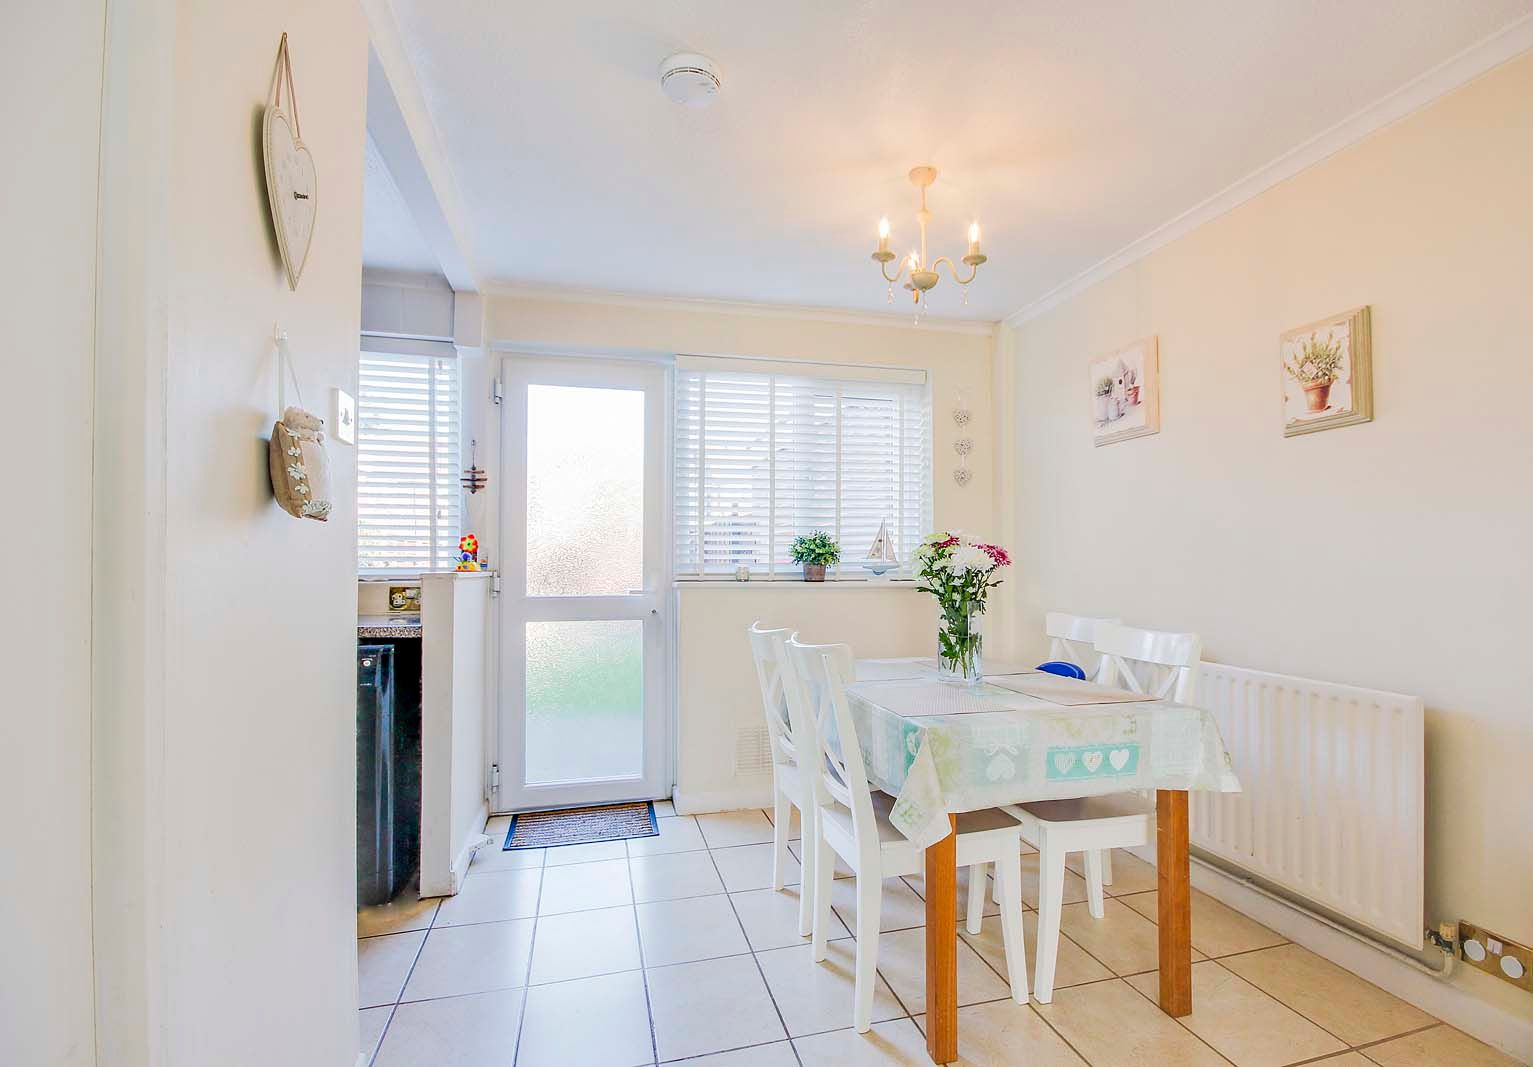 3 bed House for sale in East Preston - Dining room (Property Image 2)